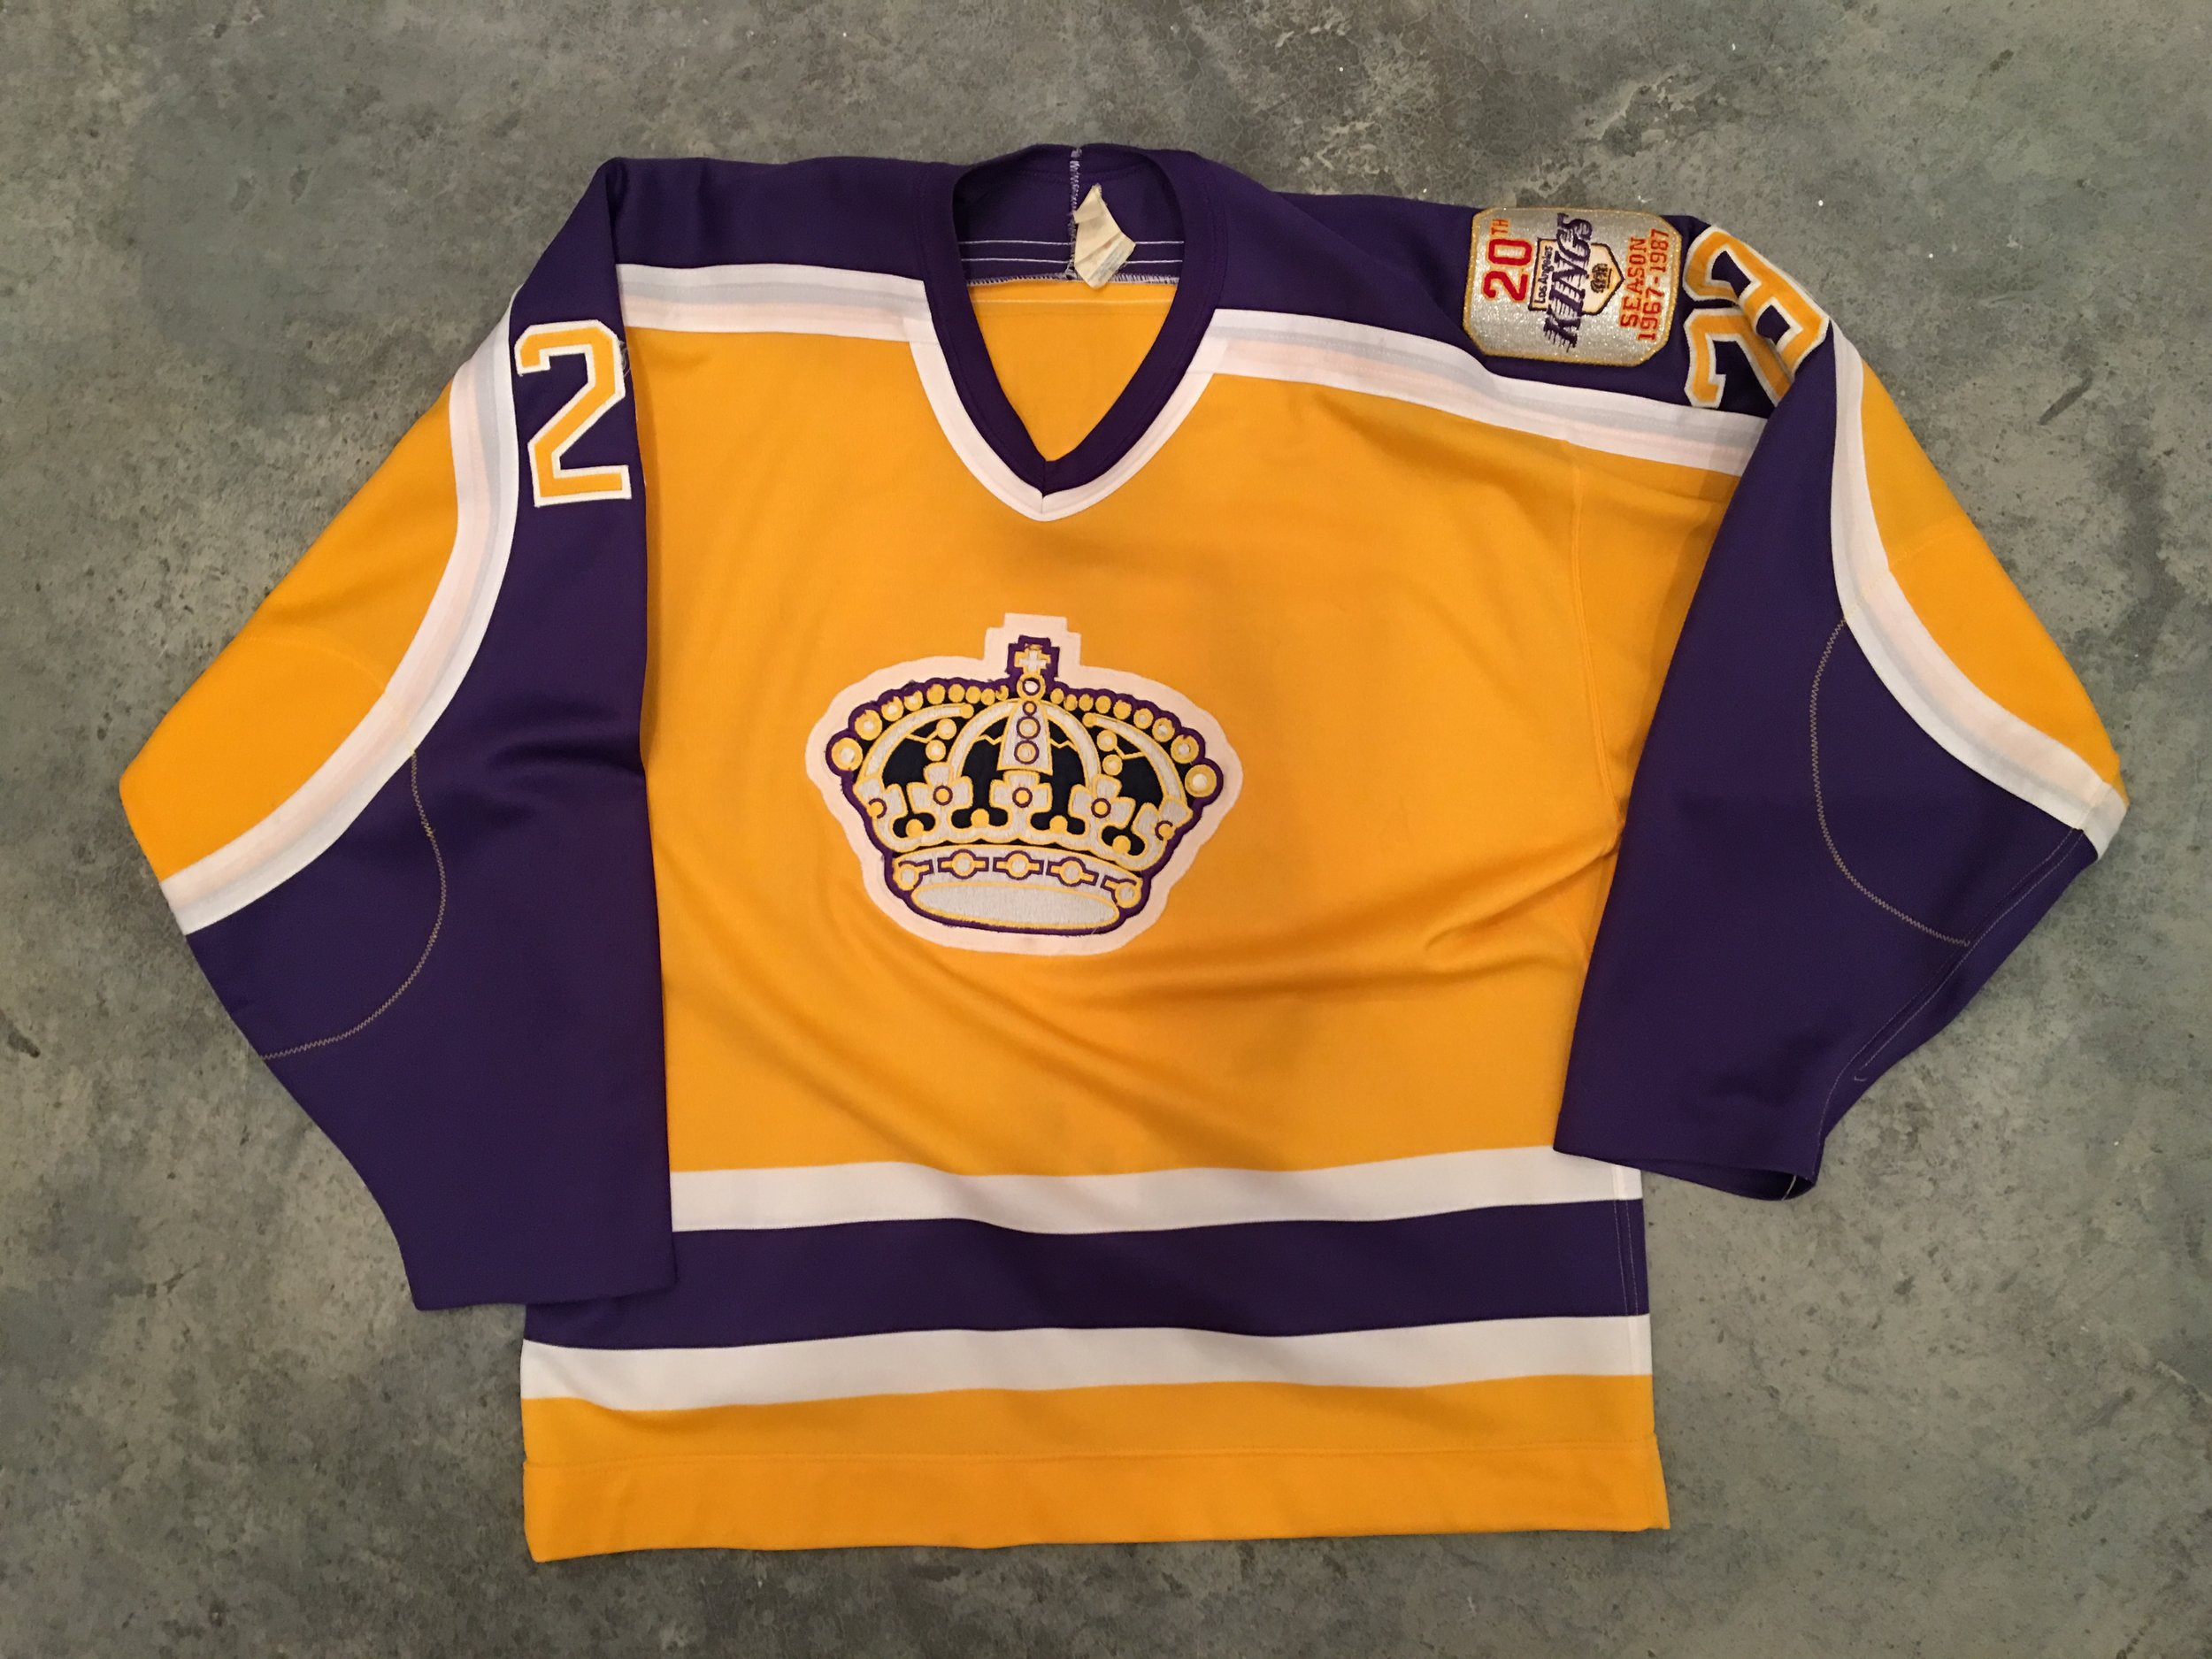 1986-87 Al Jensen game worn home jersey with Kings 20th anniversary patch - SOLD